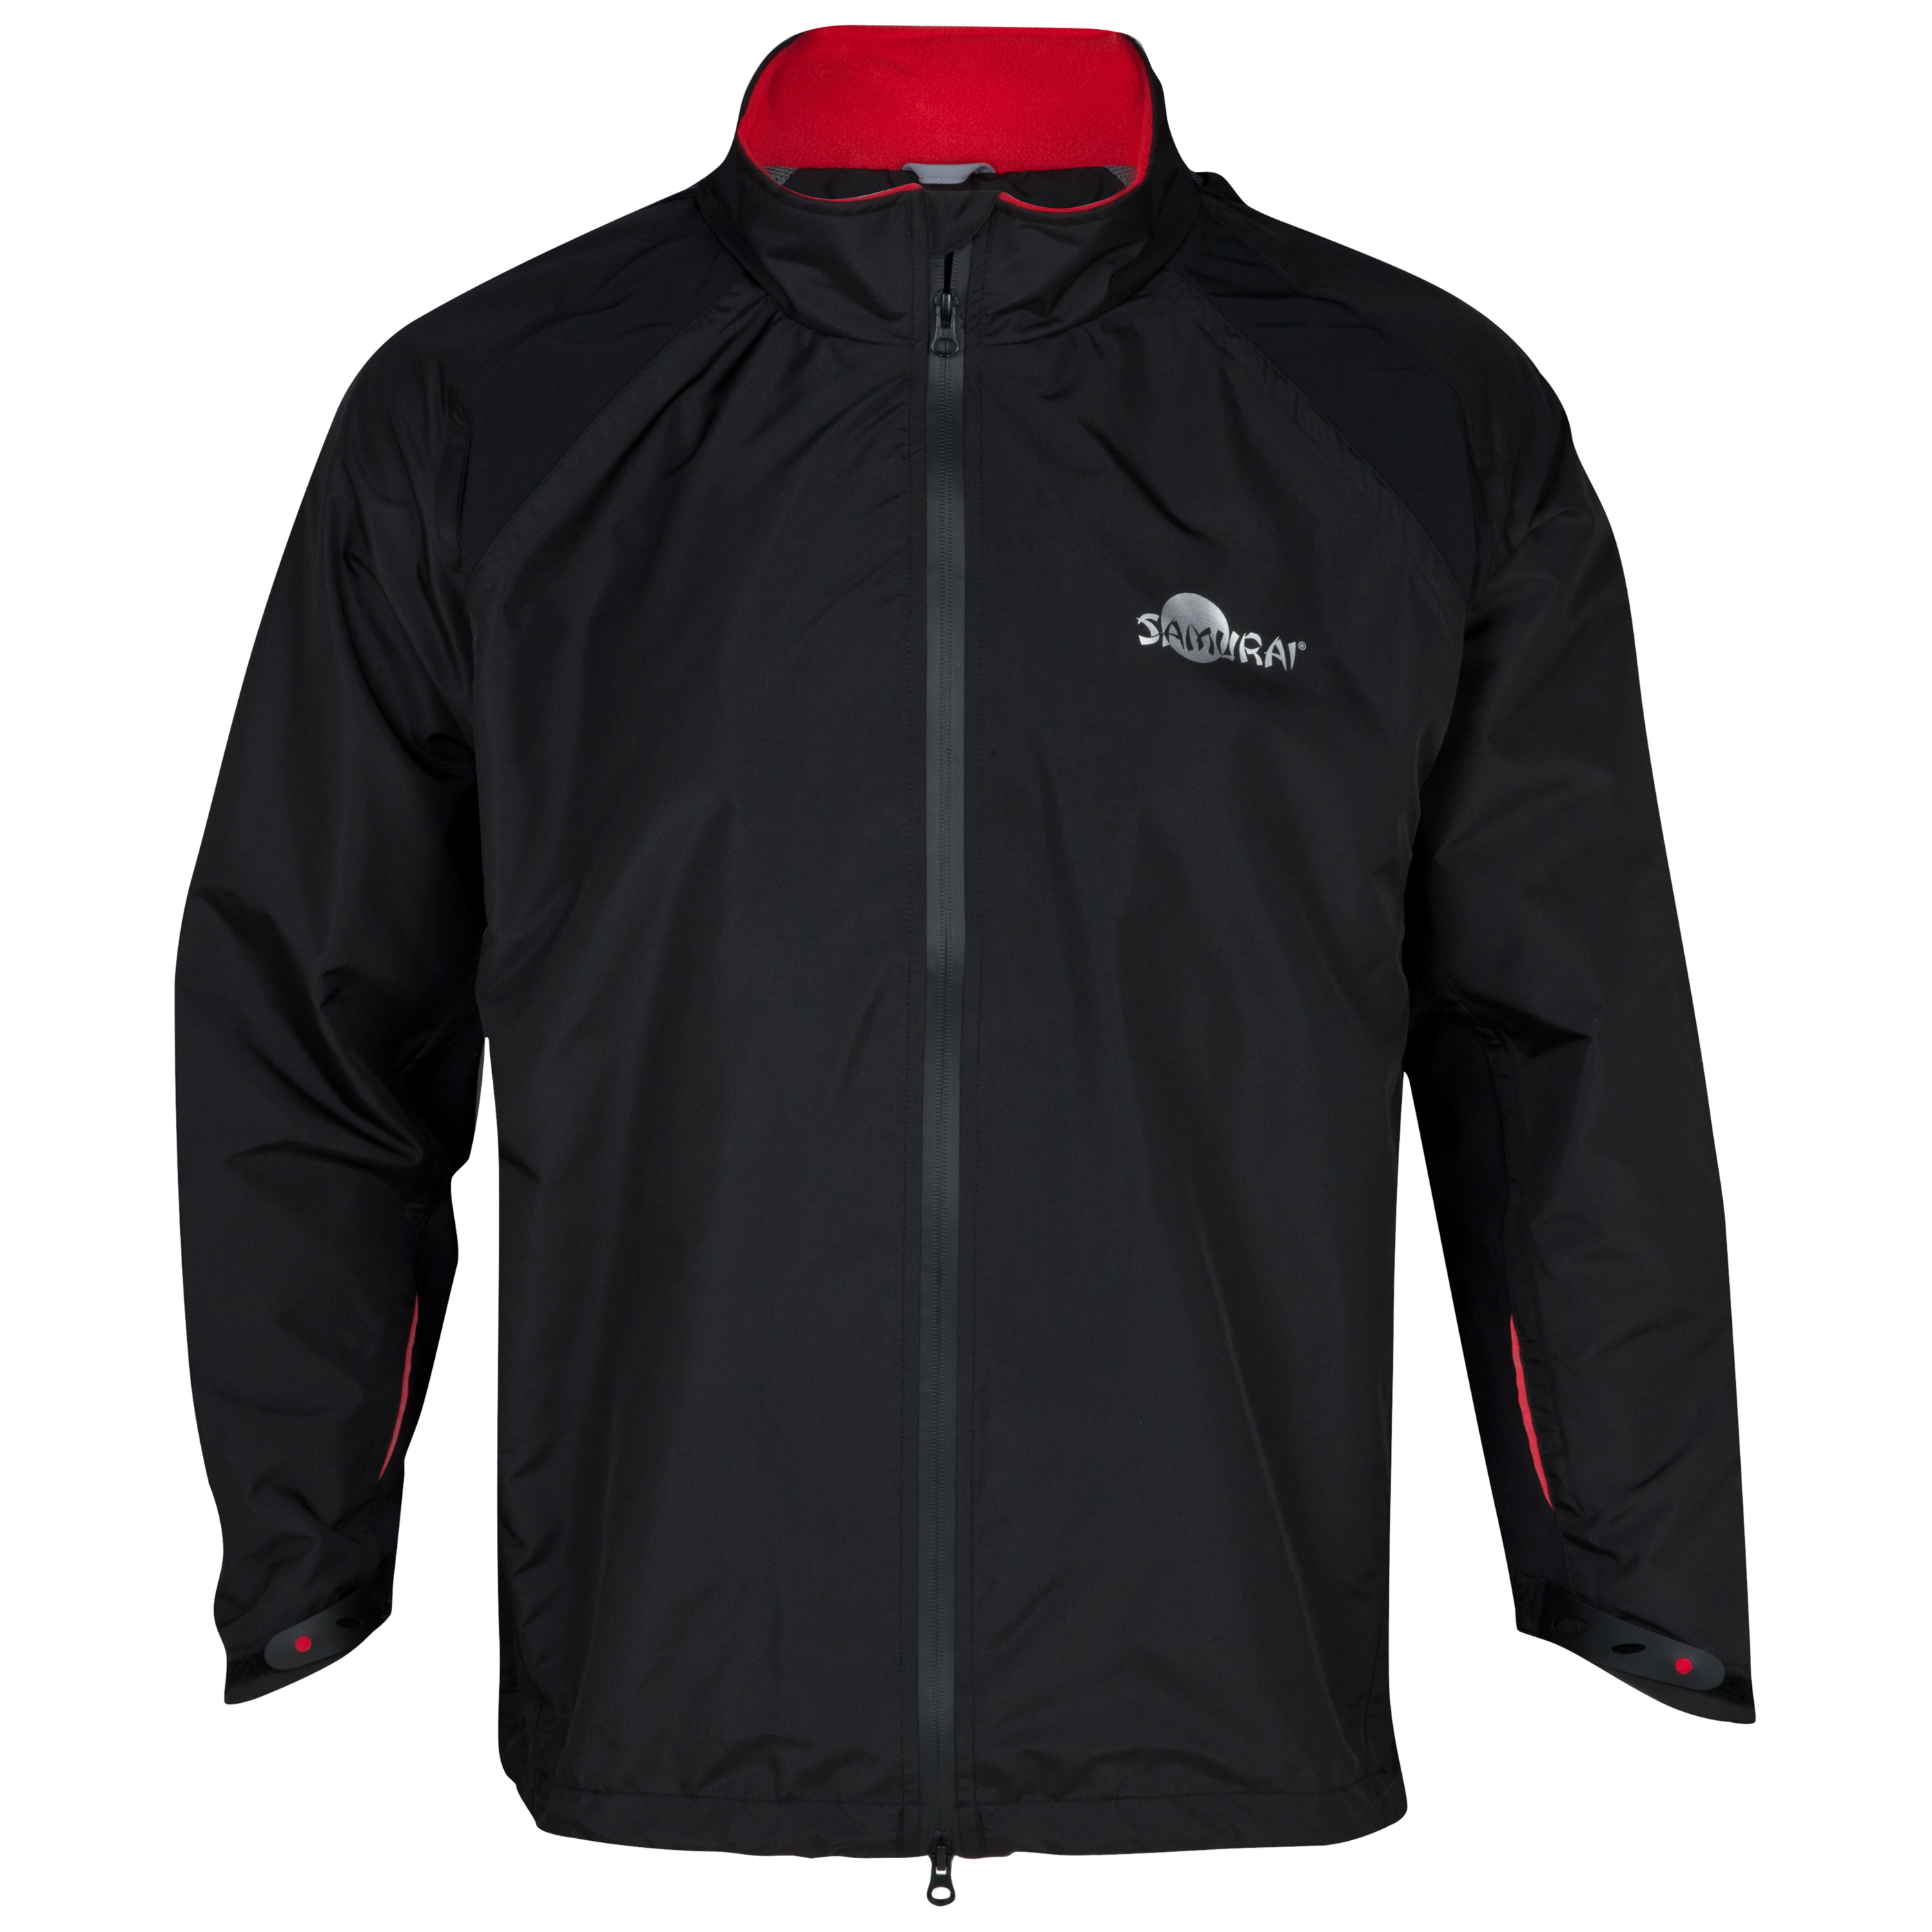 Samurai Rugby Elite Lightweight Jacket - Black